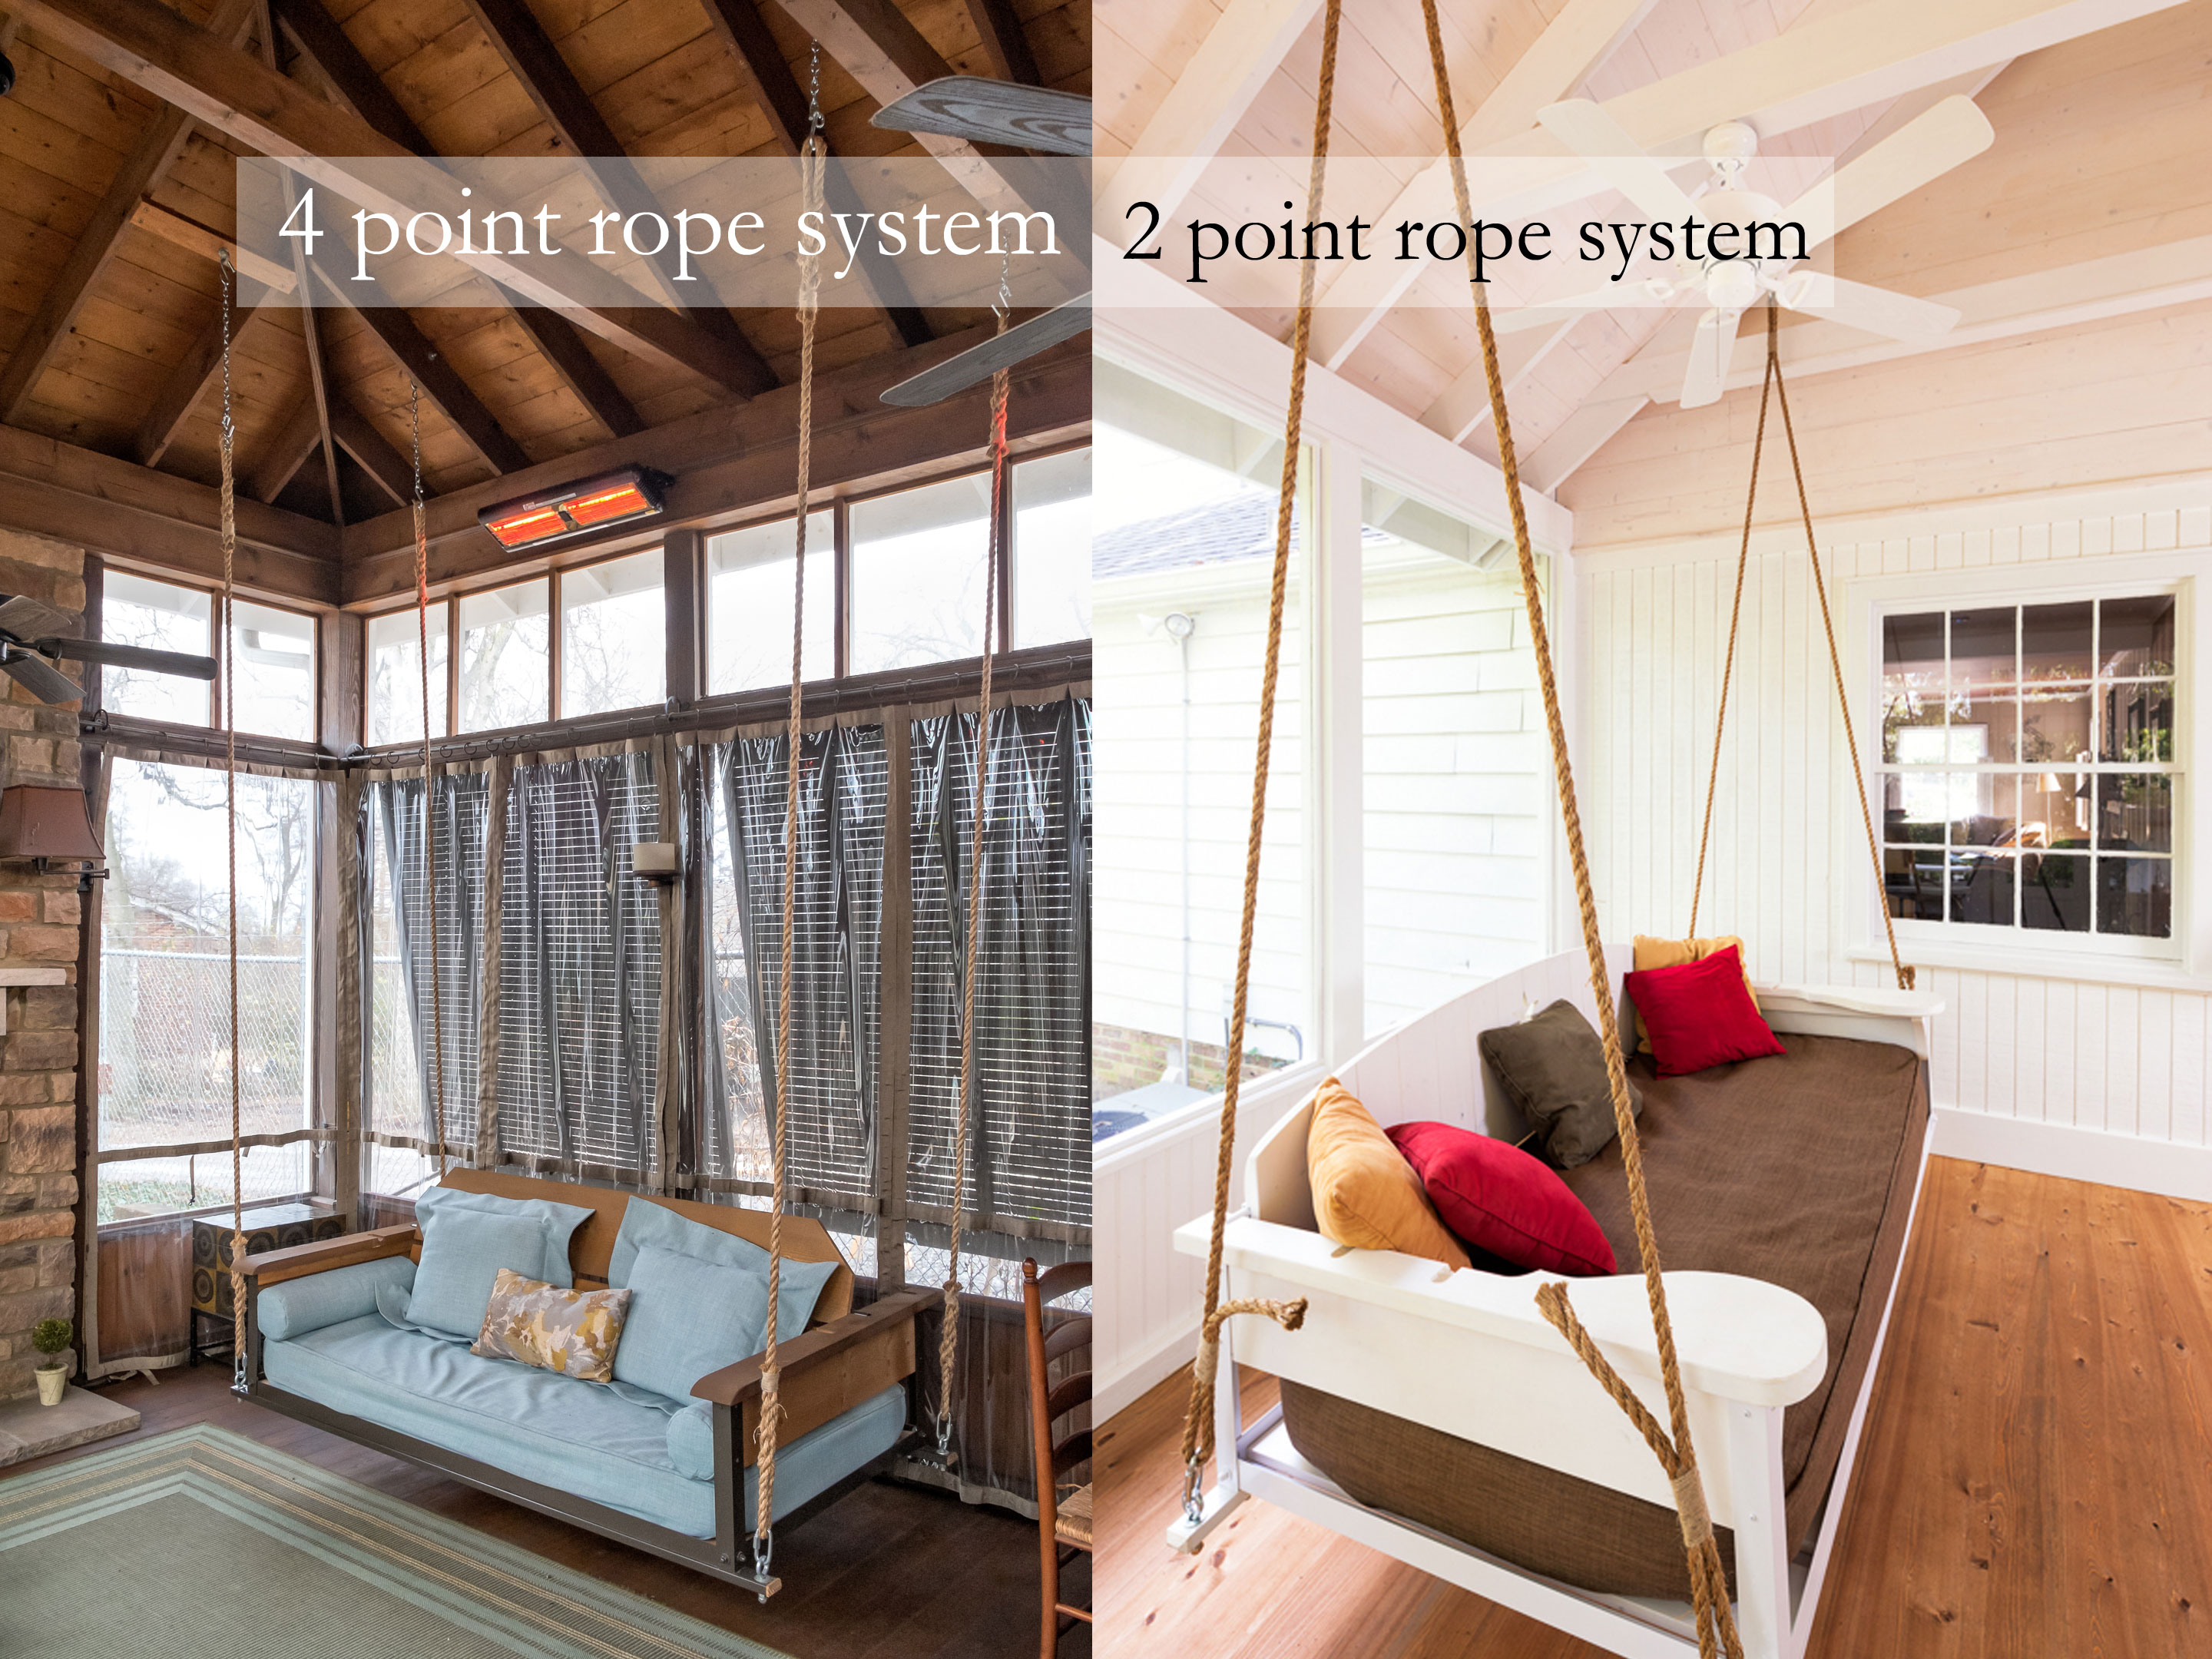 Diy Bedroom Decorating Ideas For Teens Swing Bed Hanging Rope The Porch Companythe Porch Company